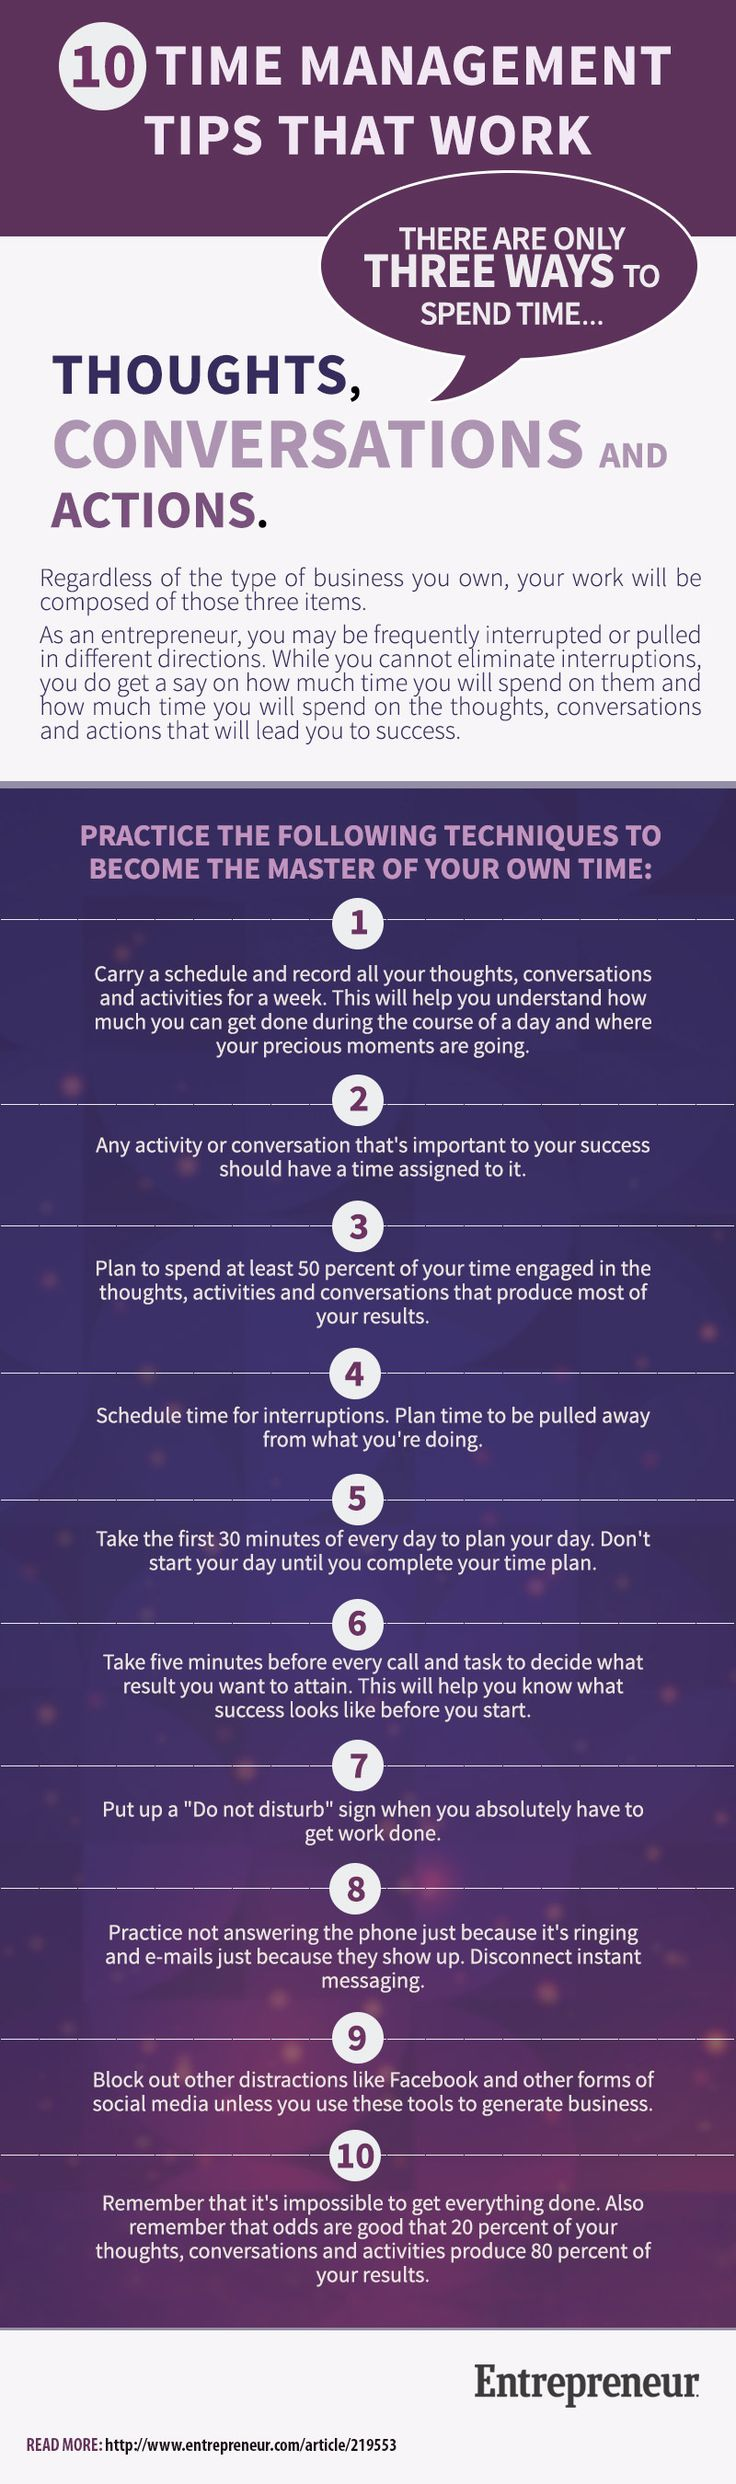 How to Manage Time With 10 Tips That Work (Infographic) #TimeManagement #Infographic #Leadership